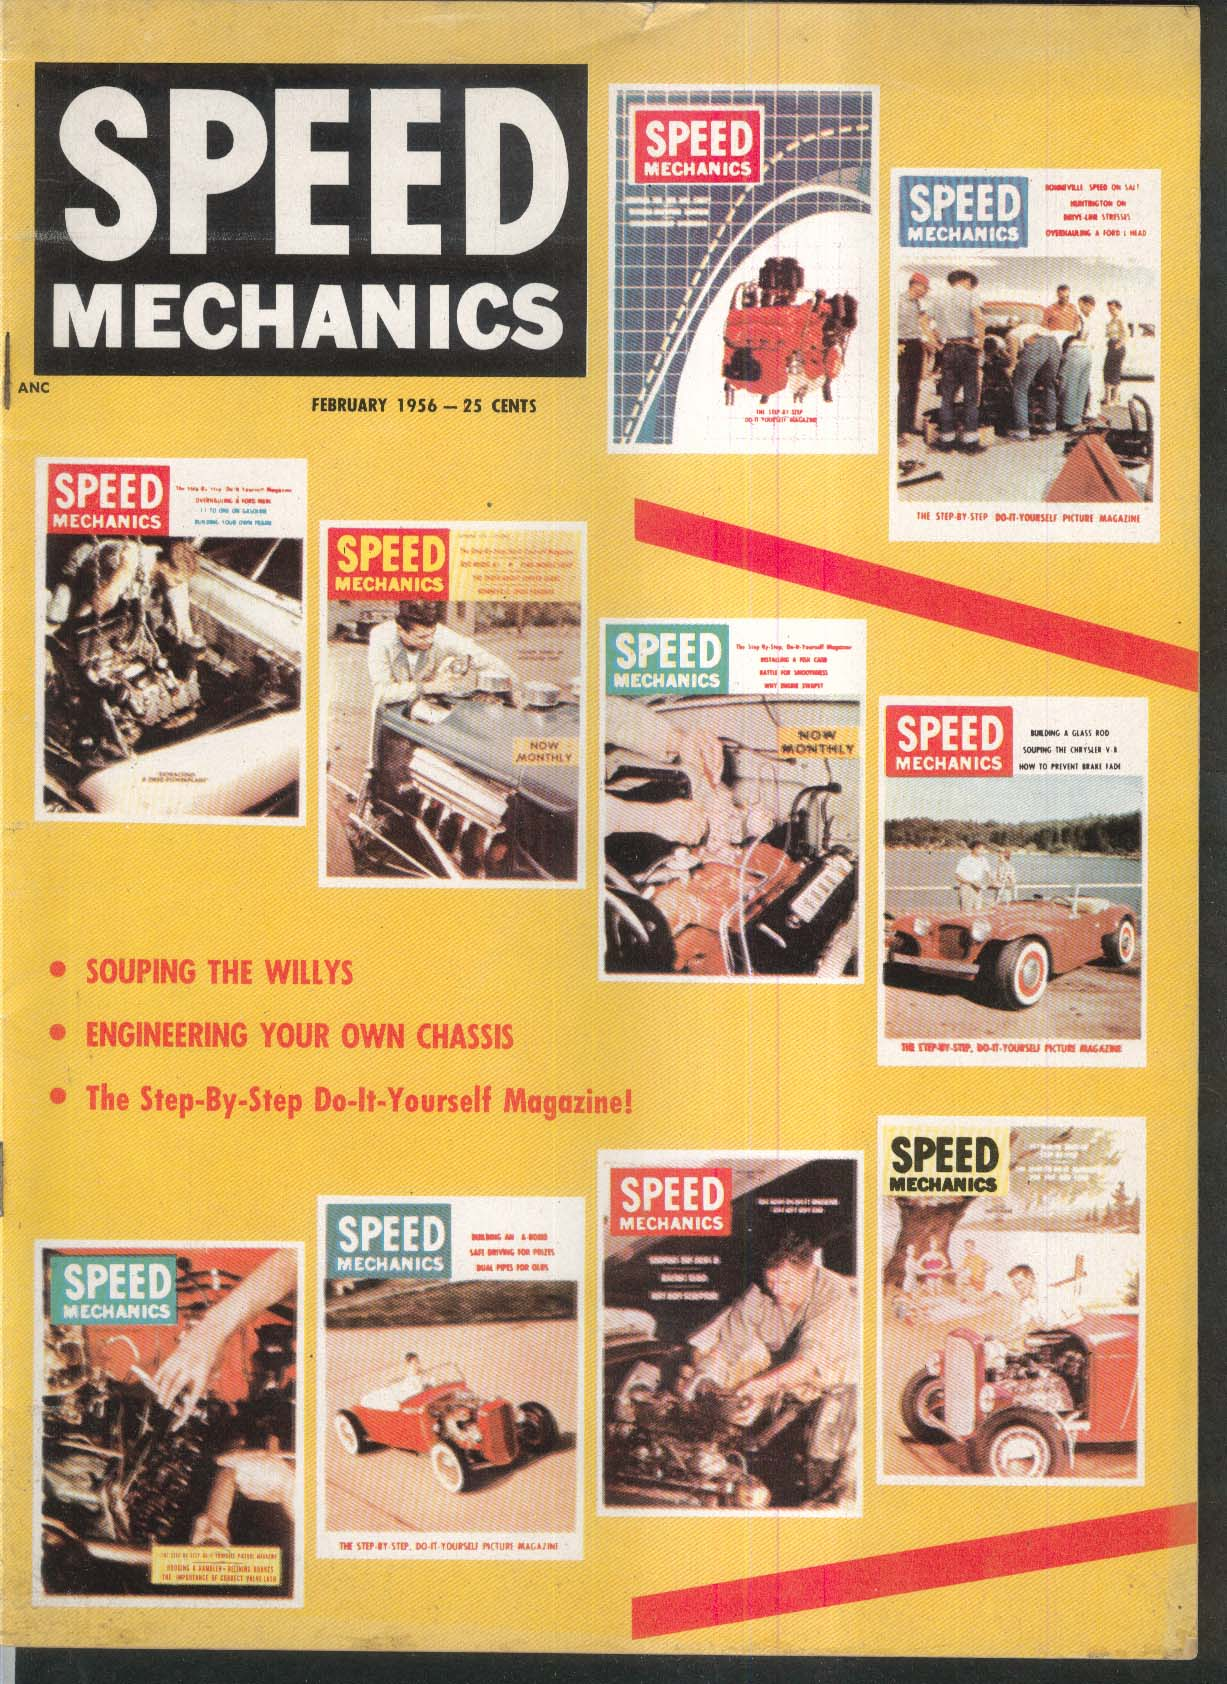 SPEED MECHANICS Willys; Cassis Engineering; Olds 88 Salvage 2 1956